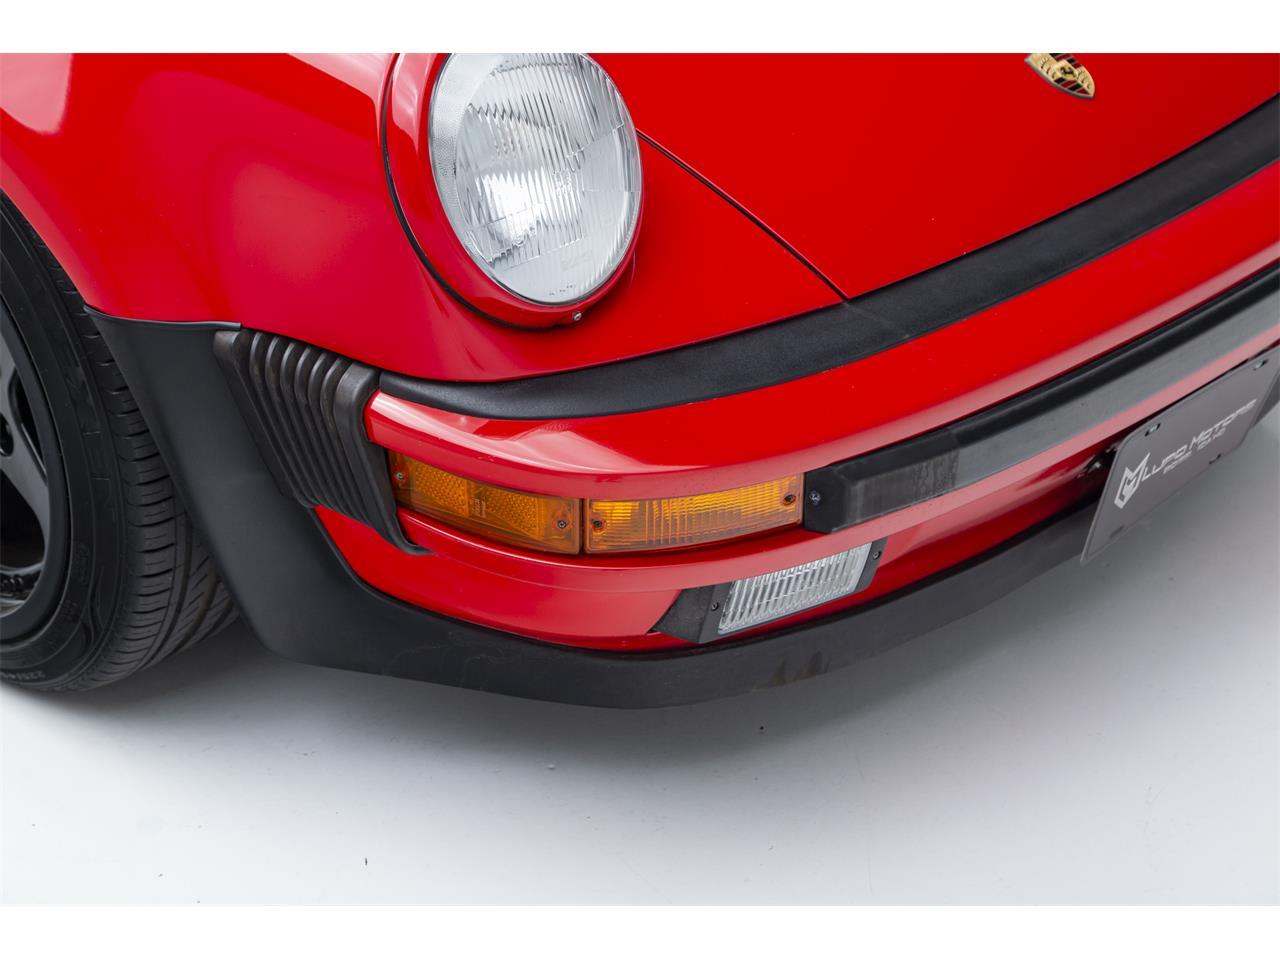 Large Picture of 1979 Porsche 911 Carrera Offered by a Private Seller - QIAZ